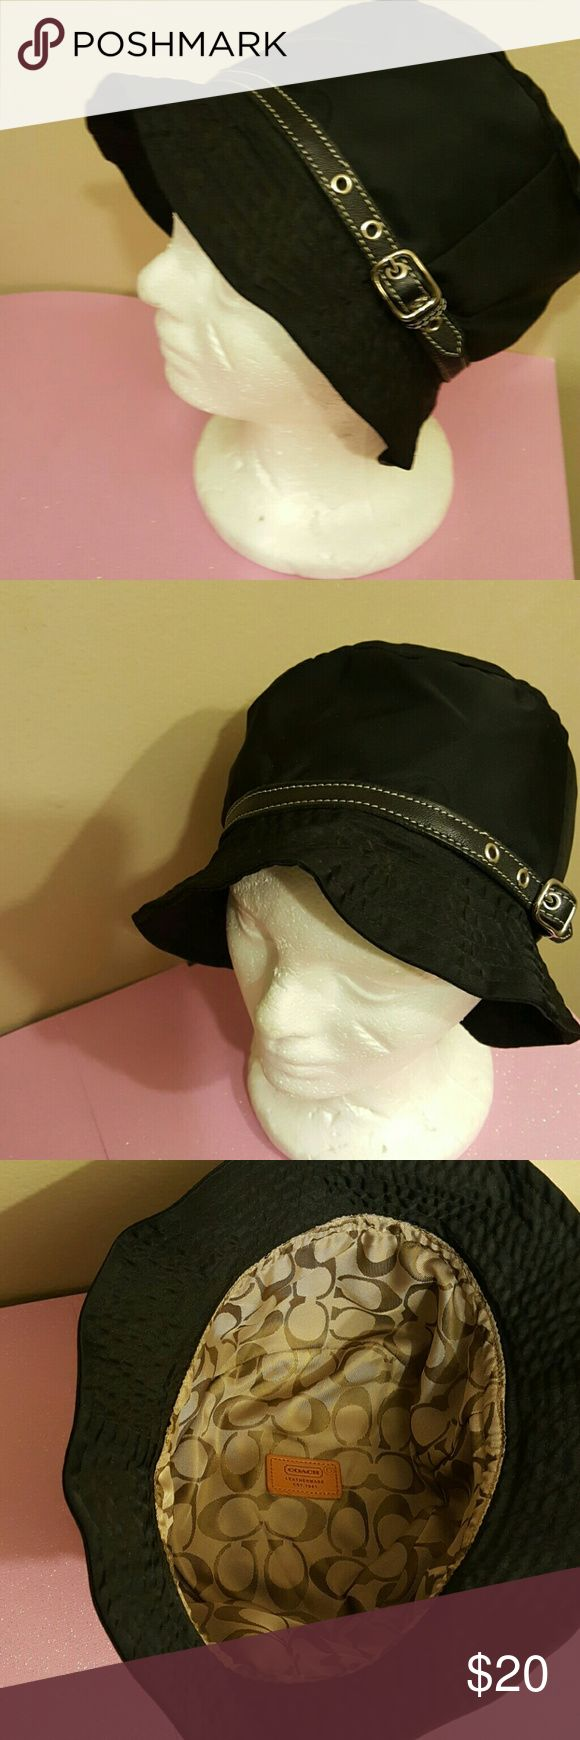 Coach hat Black hat with leather and silver tone hardware. Purchased at oulet store more than 5 years ago. Wore three times for gatherings . Inside tag was cut off because I wore it inside out on one occasion. No box, a Coach dust bag will be included. Coach Accessories Hats